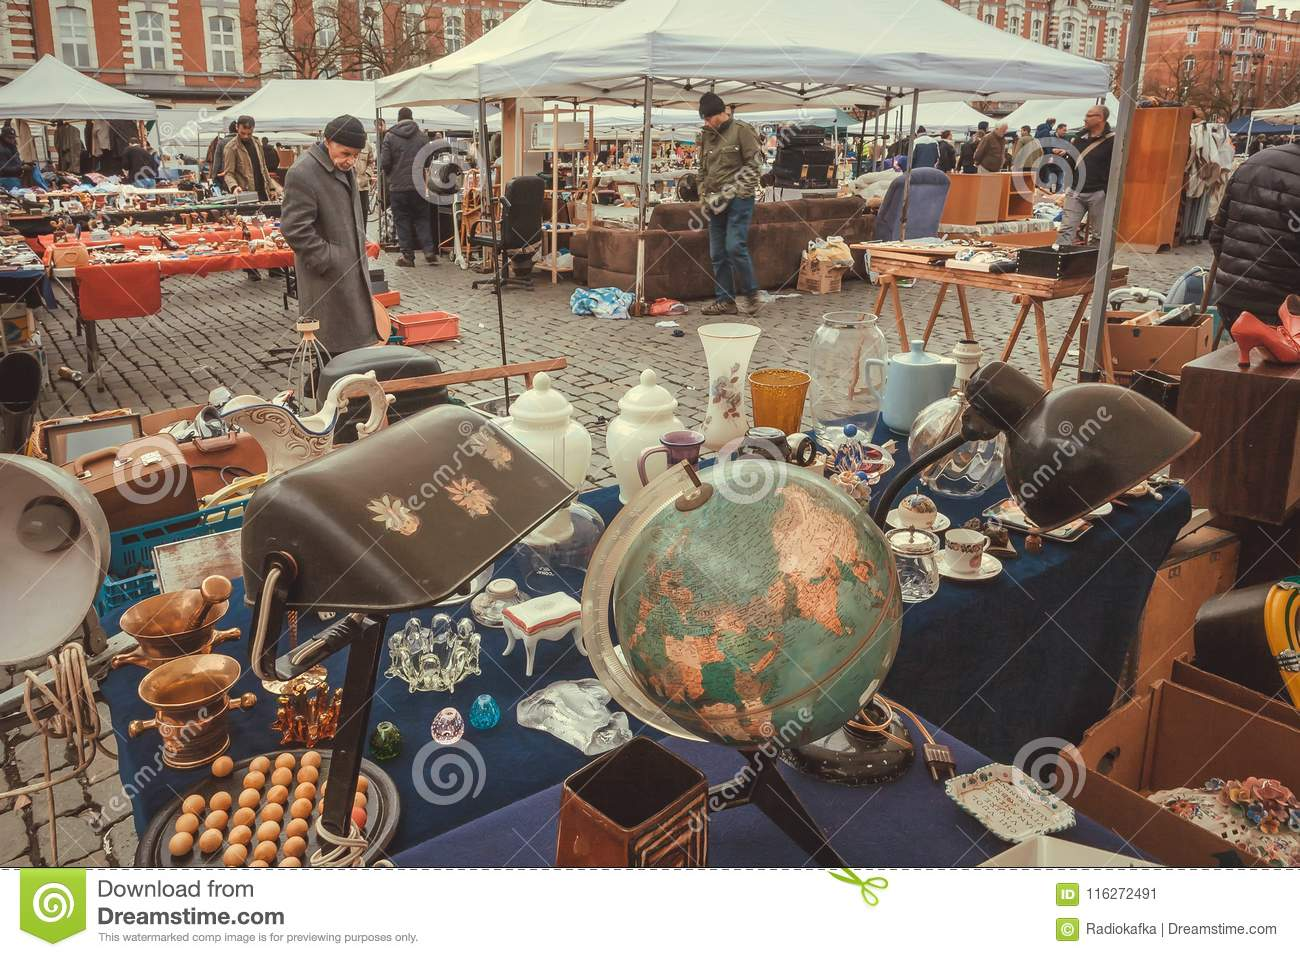 Street traders on flea market with old art, bargains and antique stuff, vintage decor and retro details